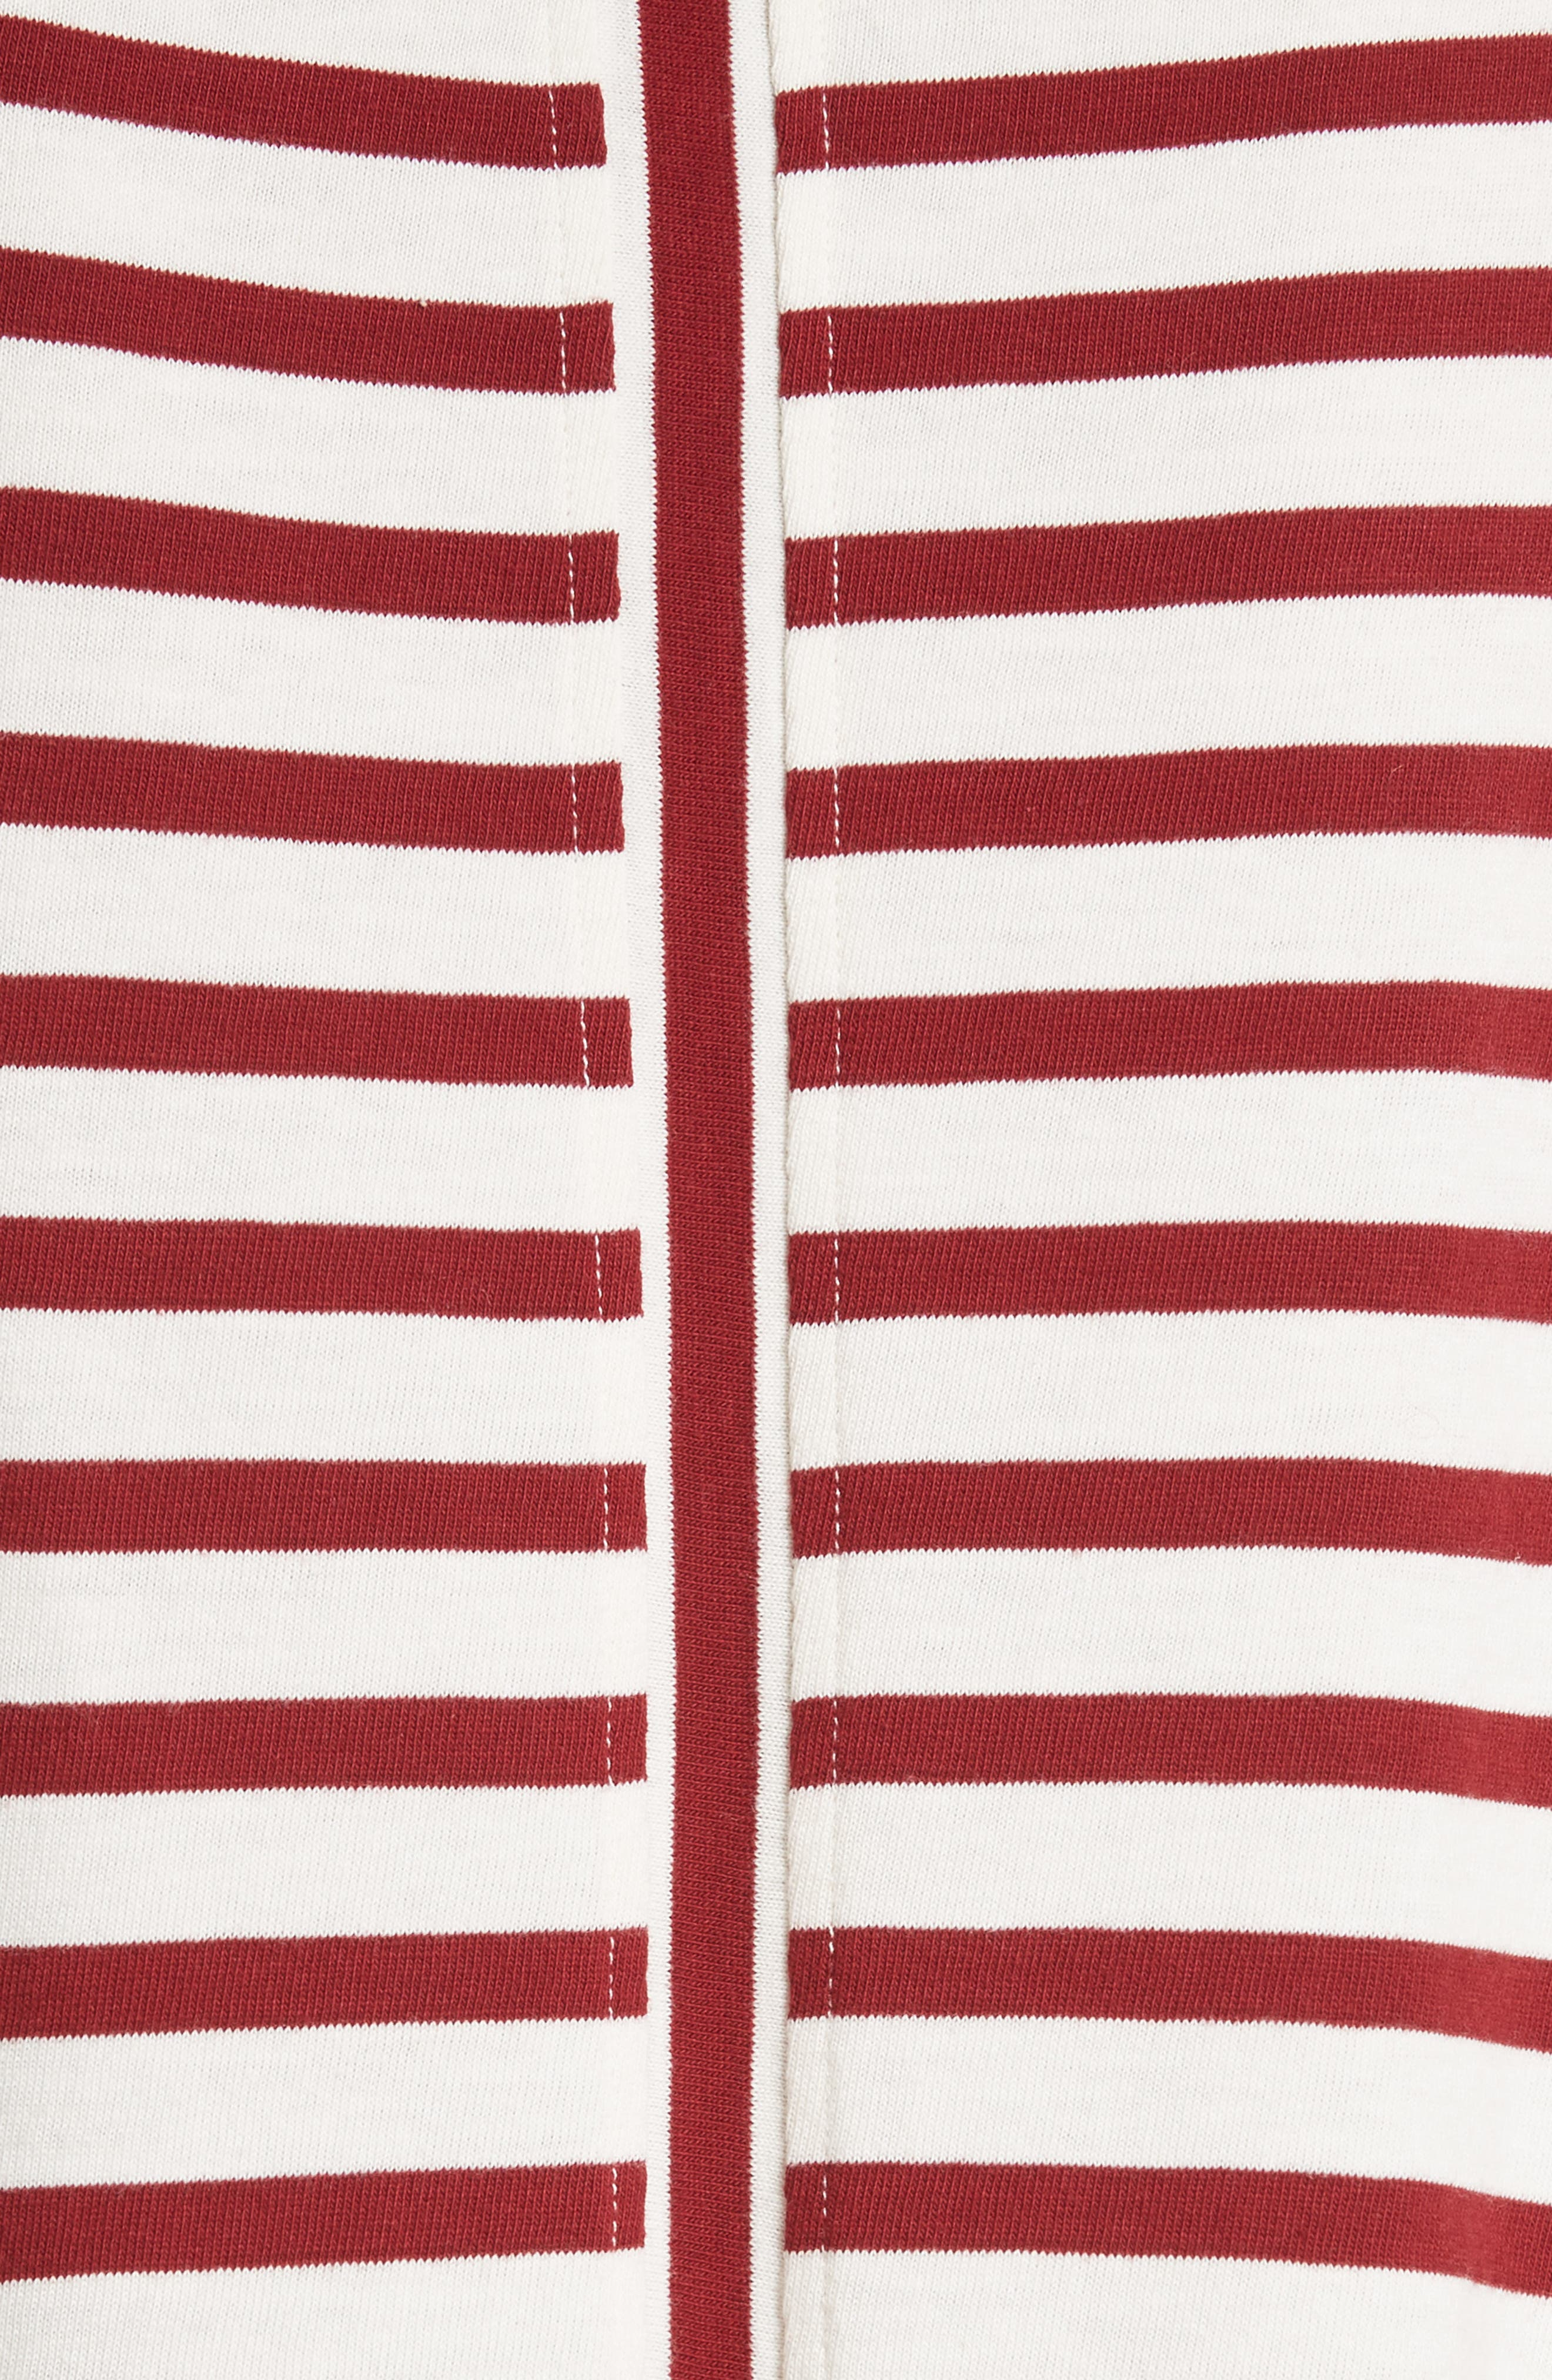 Lincoln Mariner Top,                             Alternate thumbnail 5, color,                             Ecru/ Red